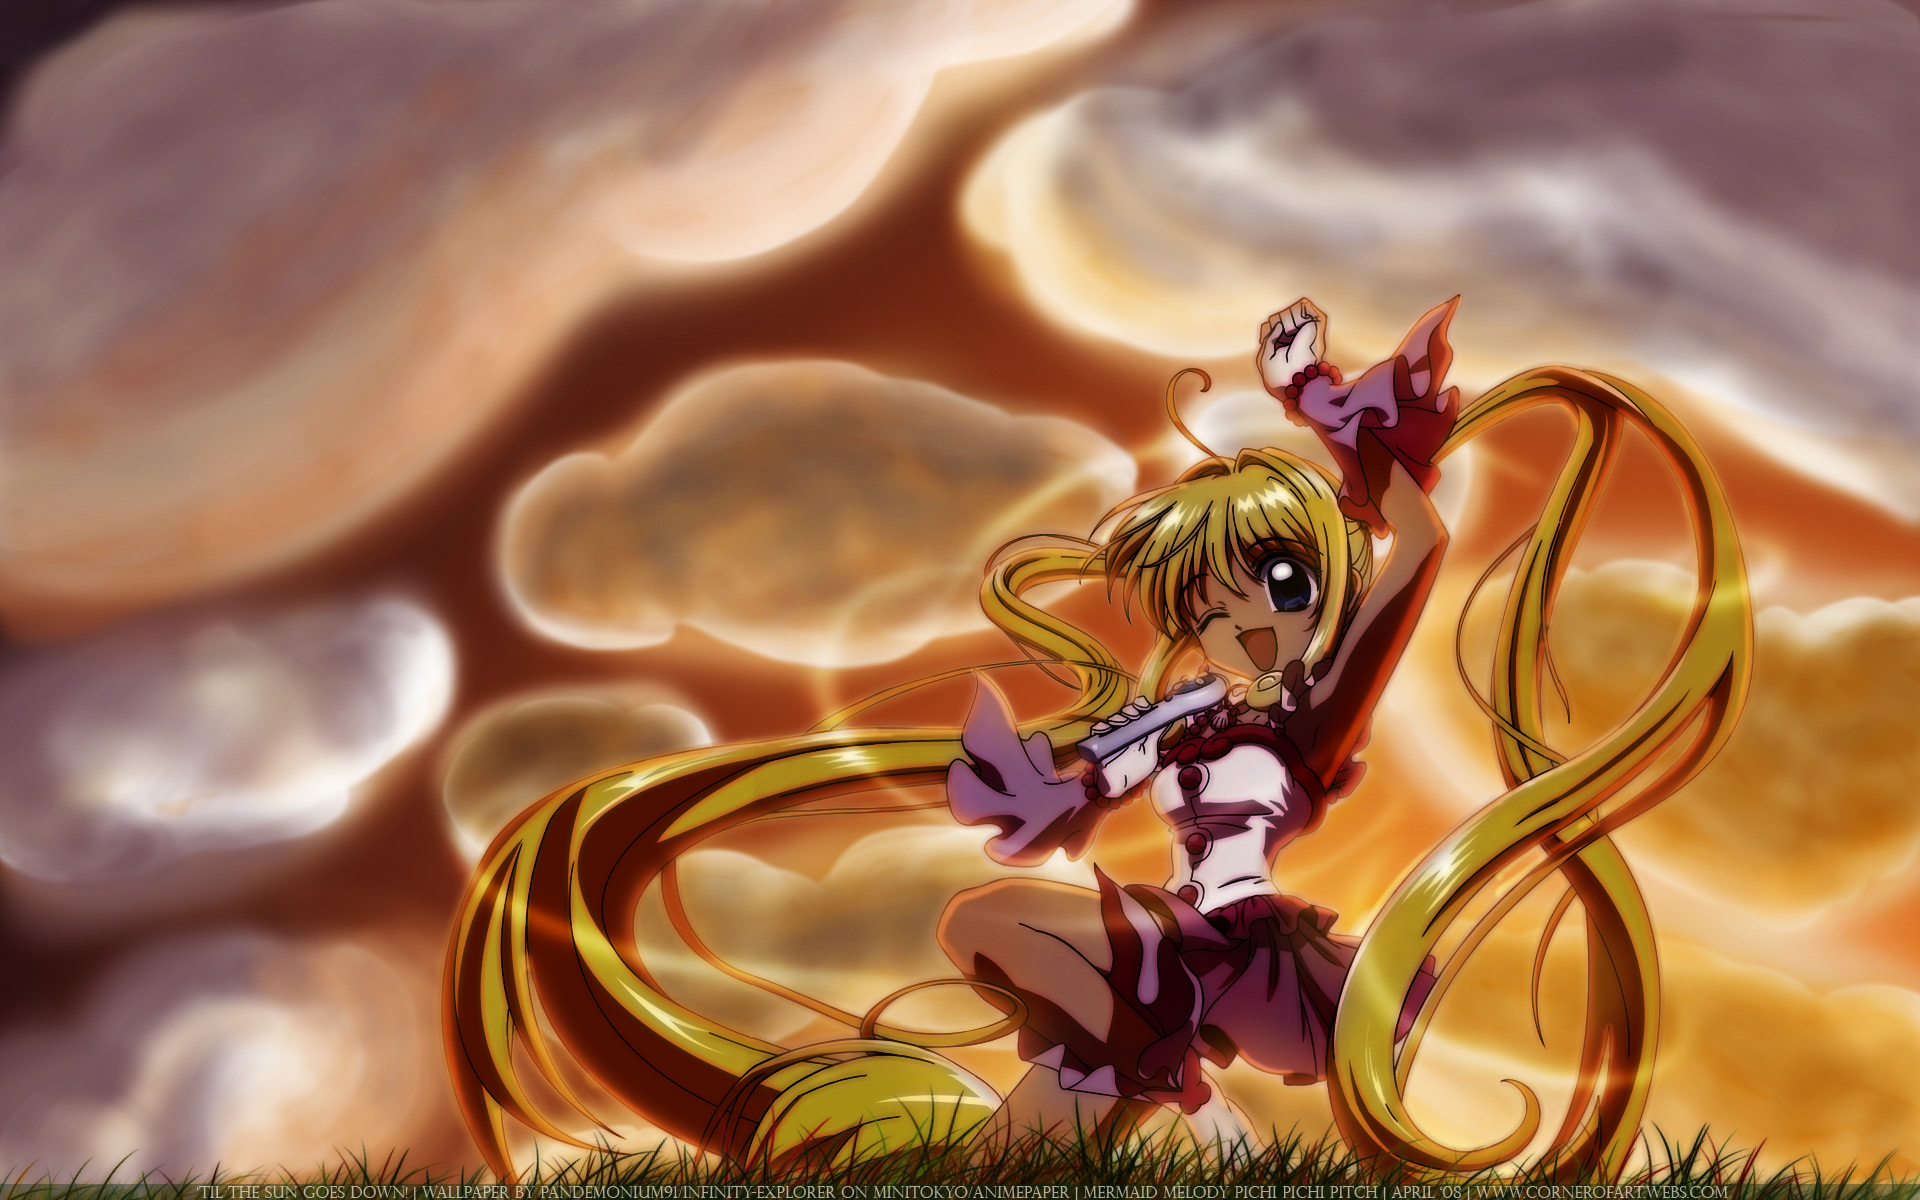 Vocaloid Anime Wallpaper 1 Mermaid Melody Pichi Pichi Pitch Hd Wallpapers